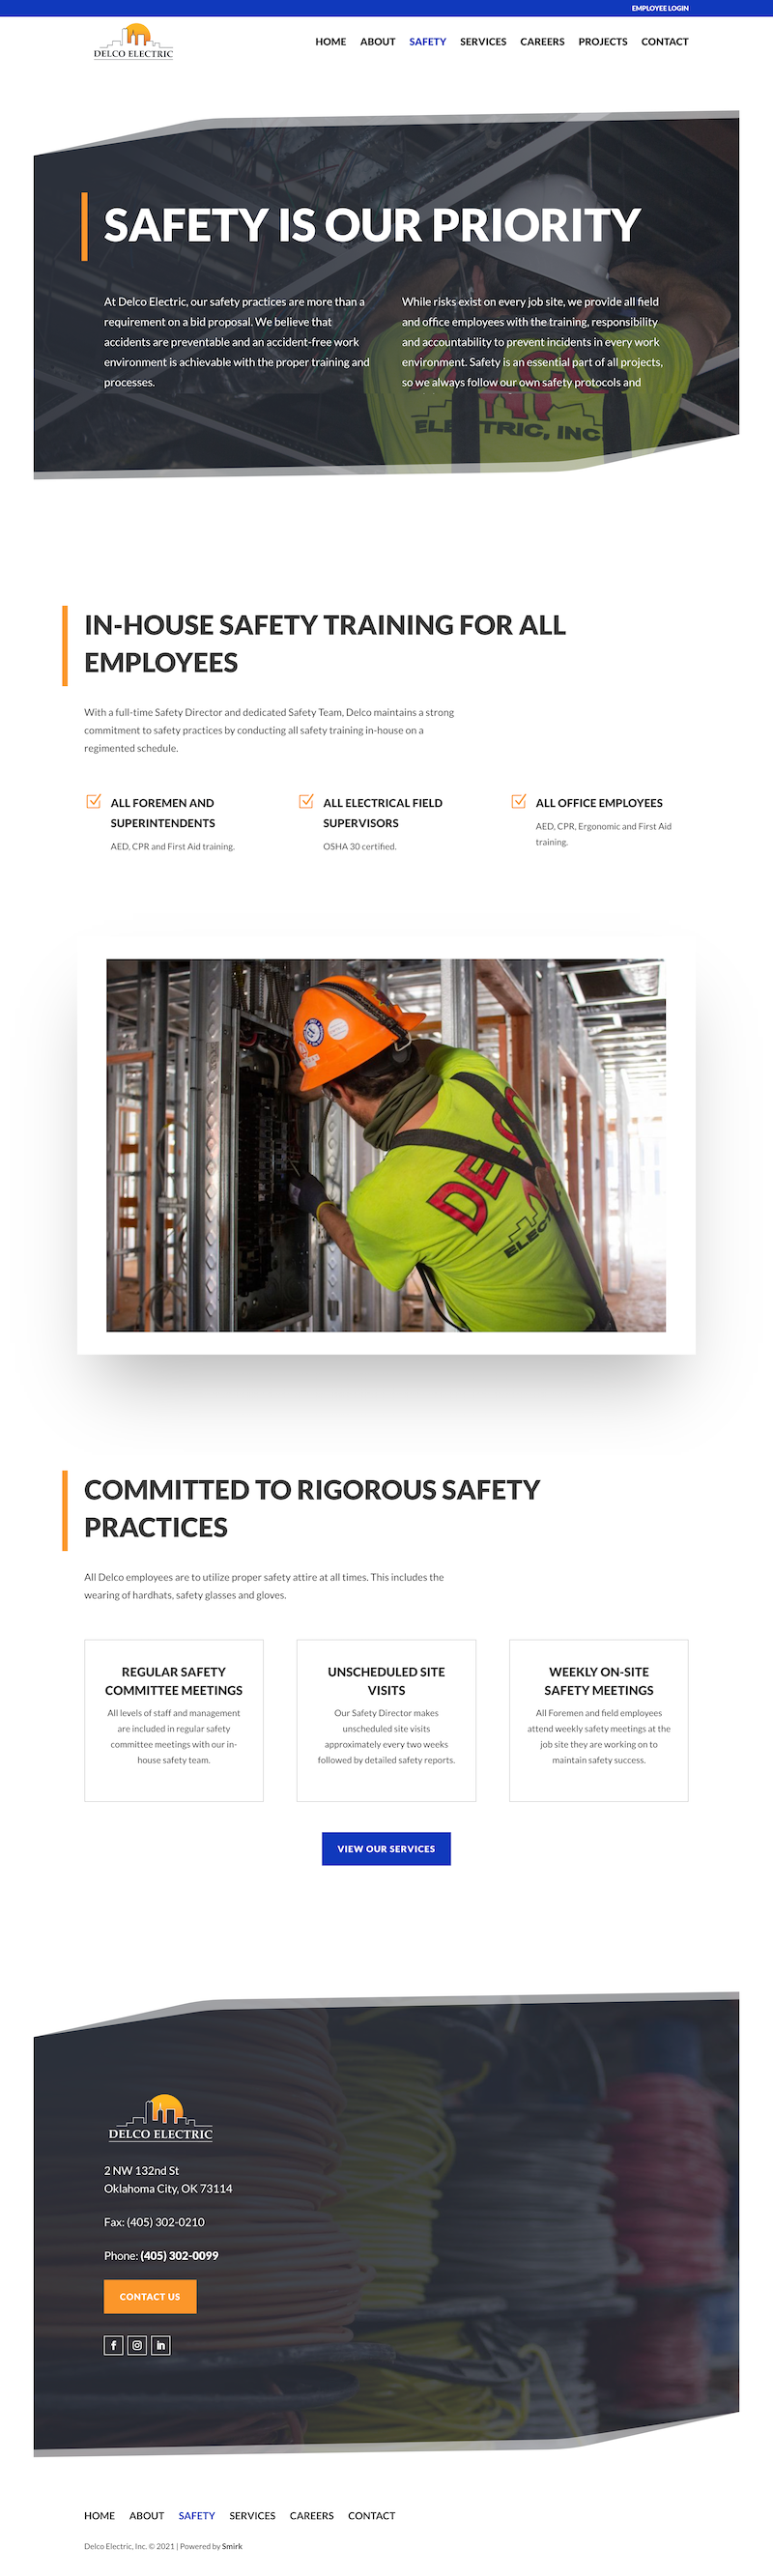 Delco Electric Safety Page